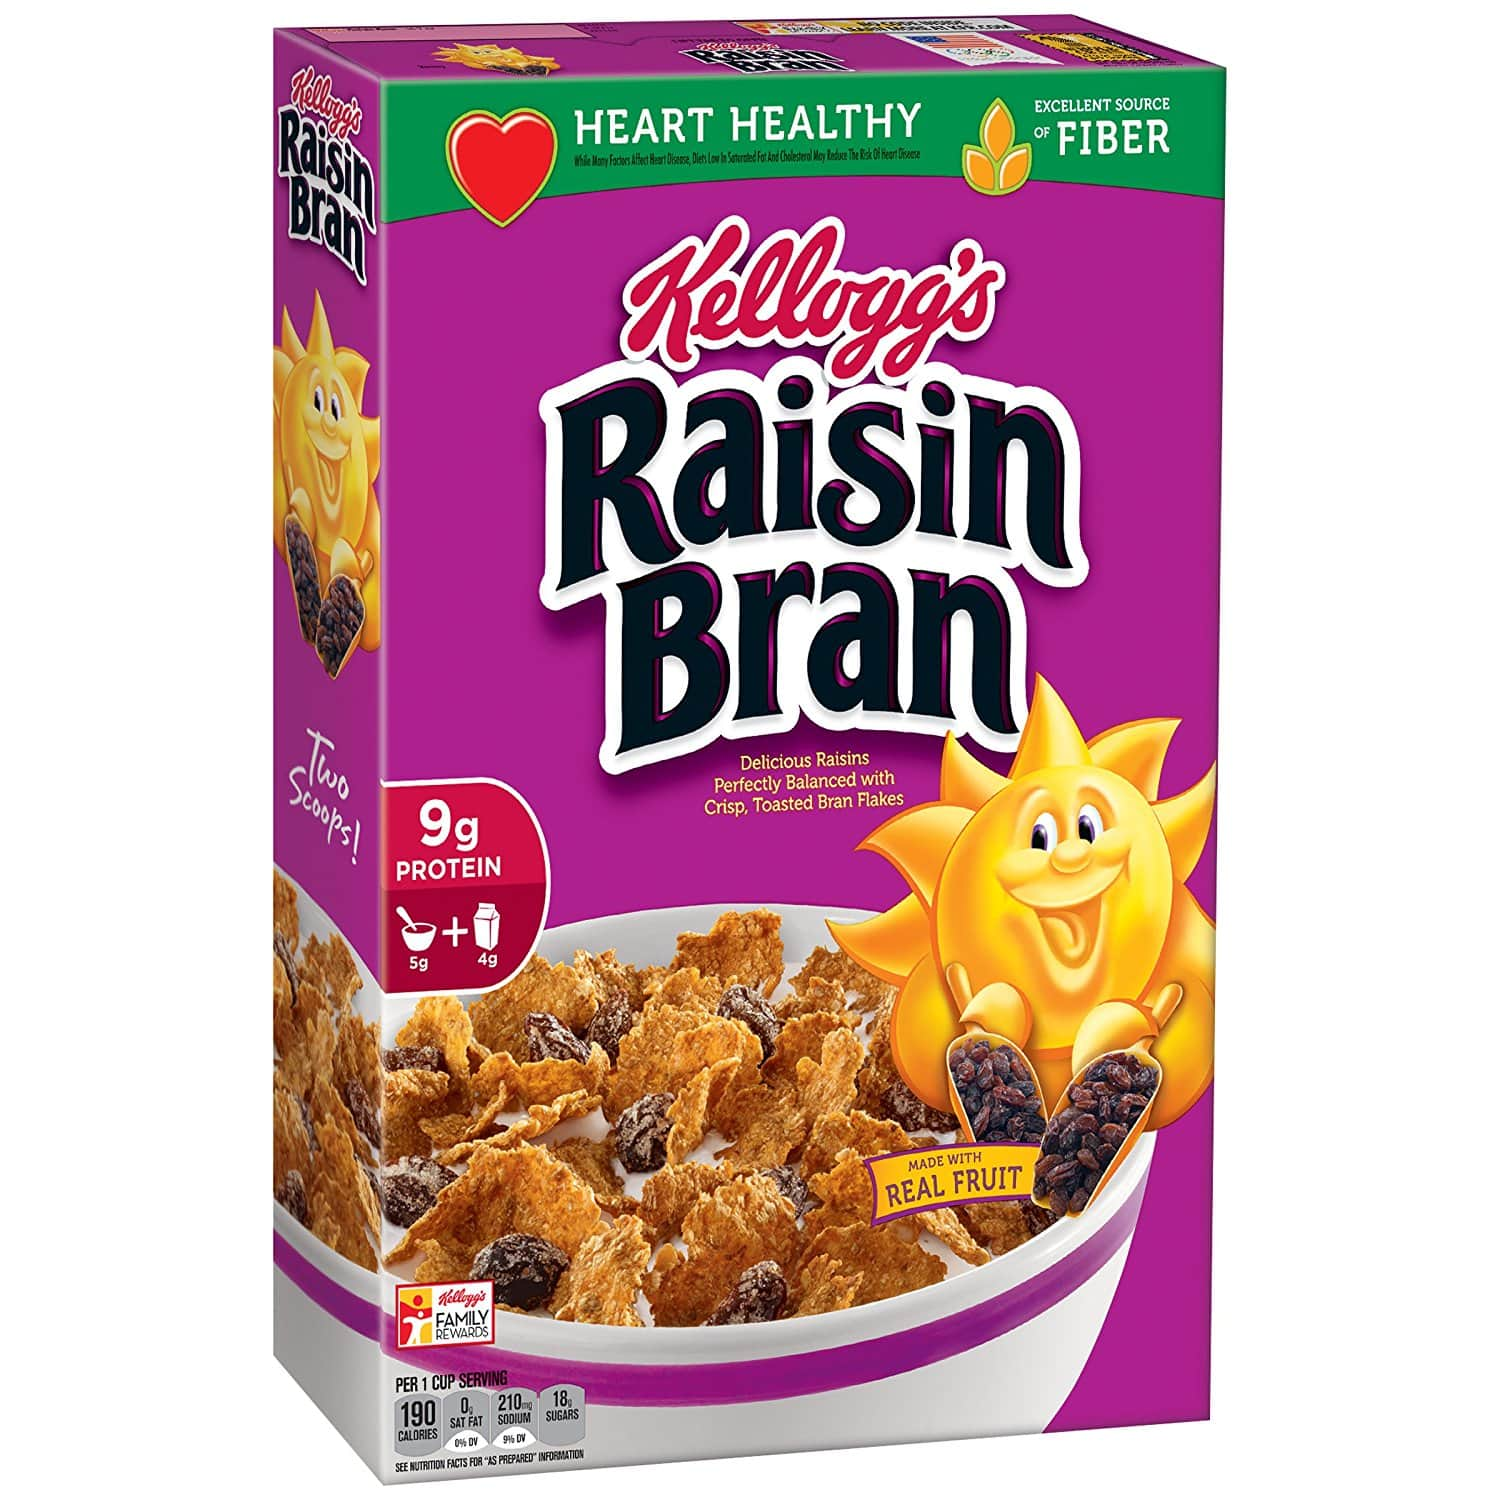 What are bran cereals